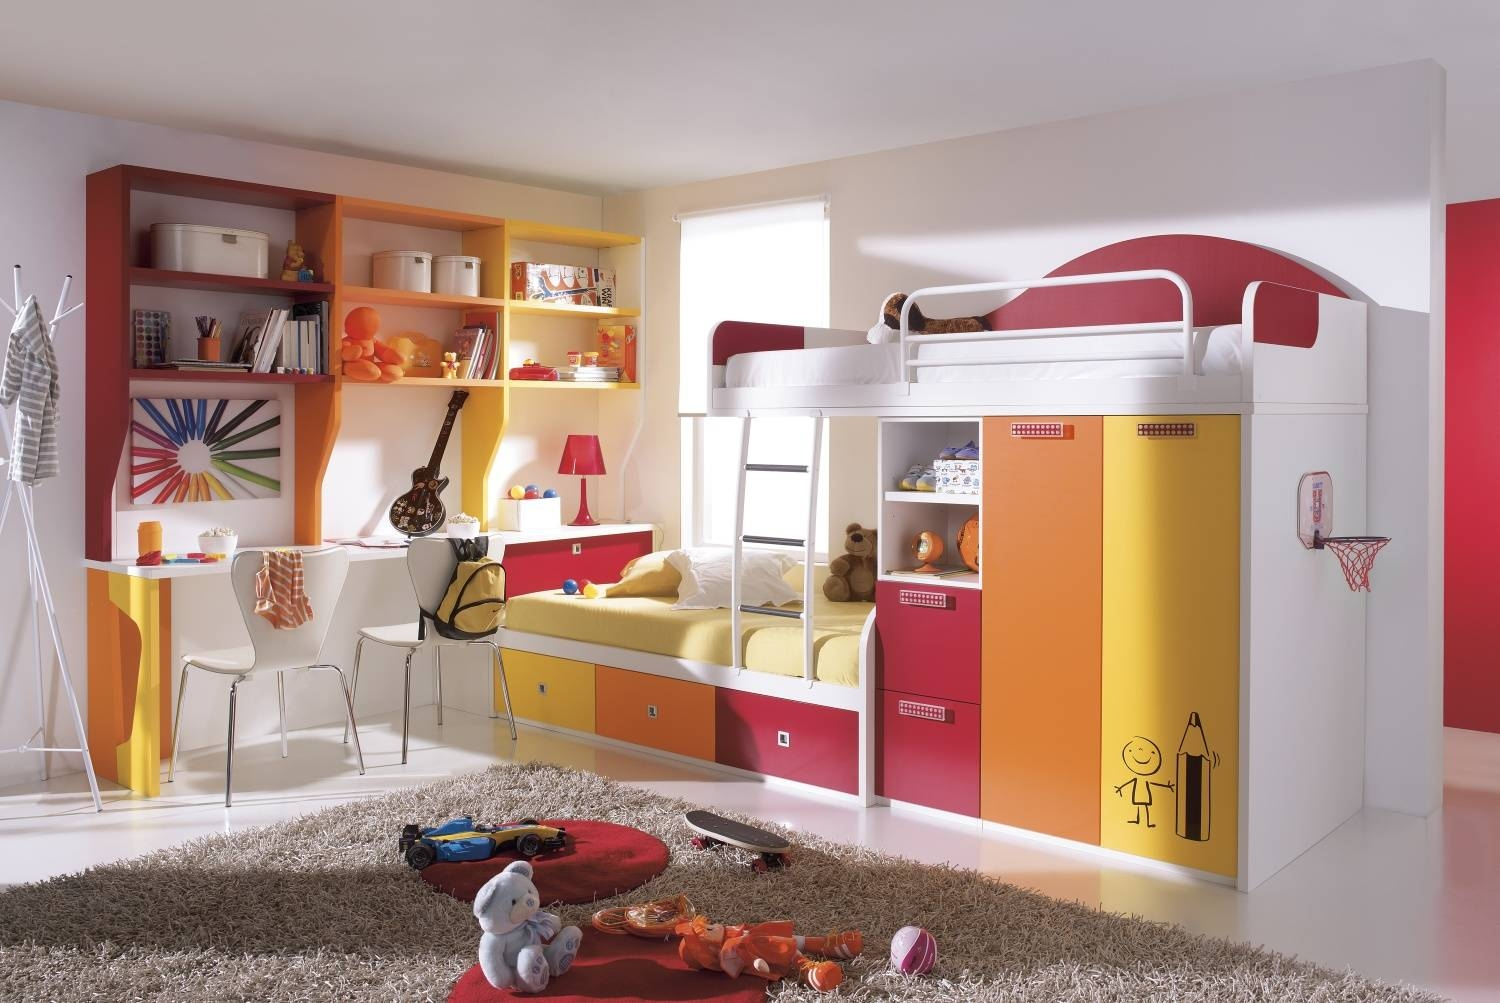 Kids' Bedroom Furniture Collection, Cabin Beds And Bunk Beds With with regard to Childrens Bed With Wardrobes Underneath (Image 12 of 15)